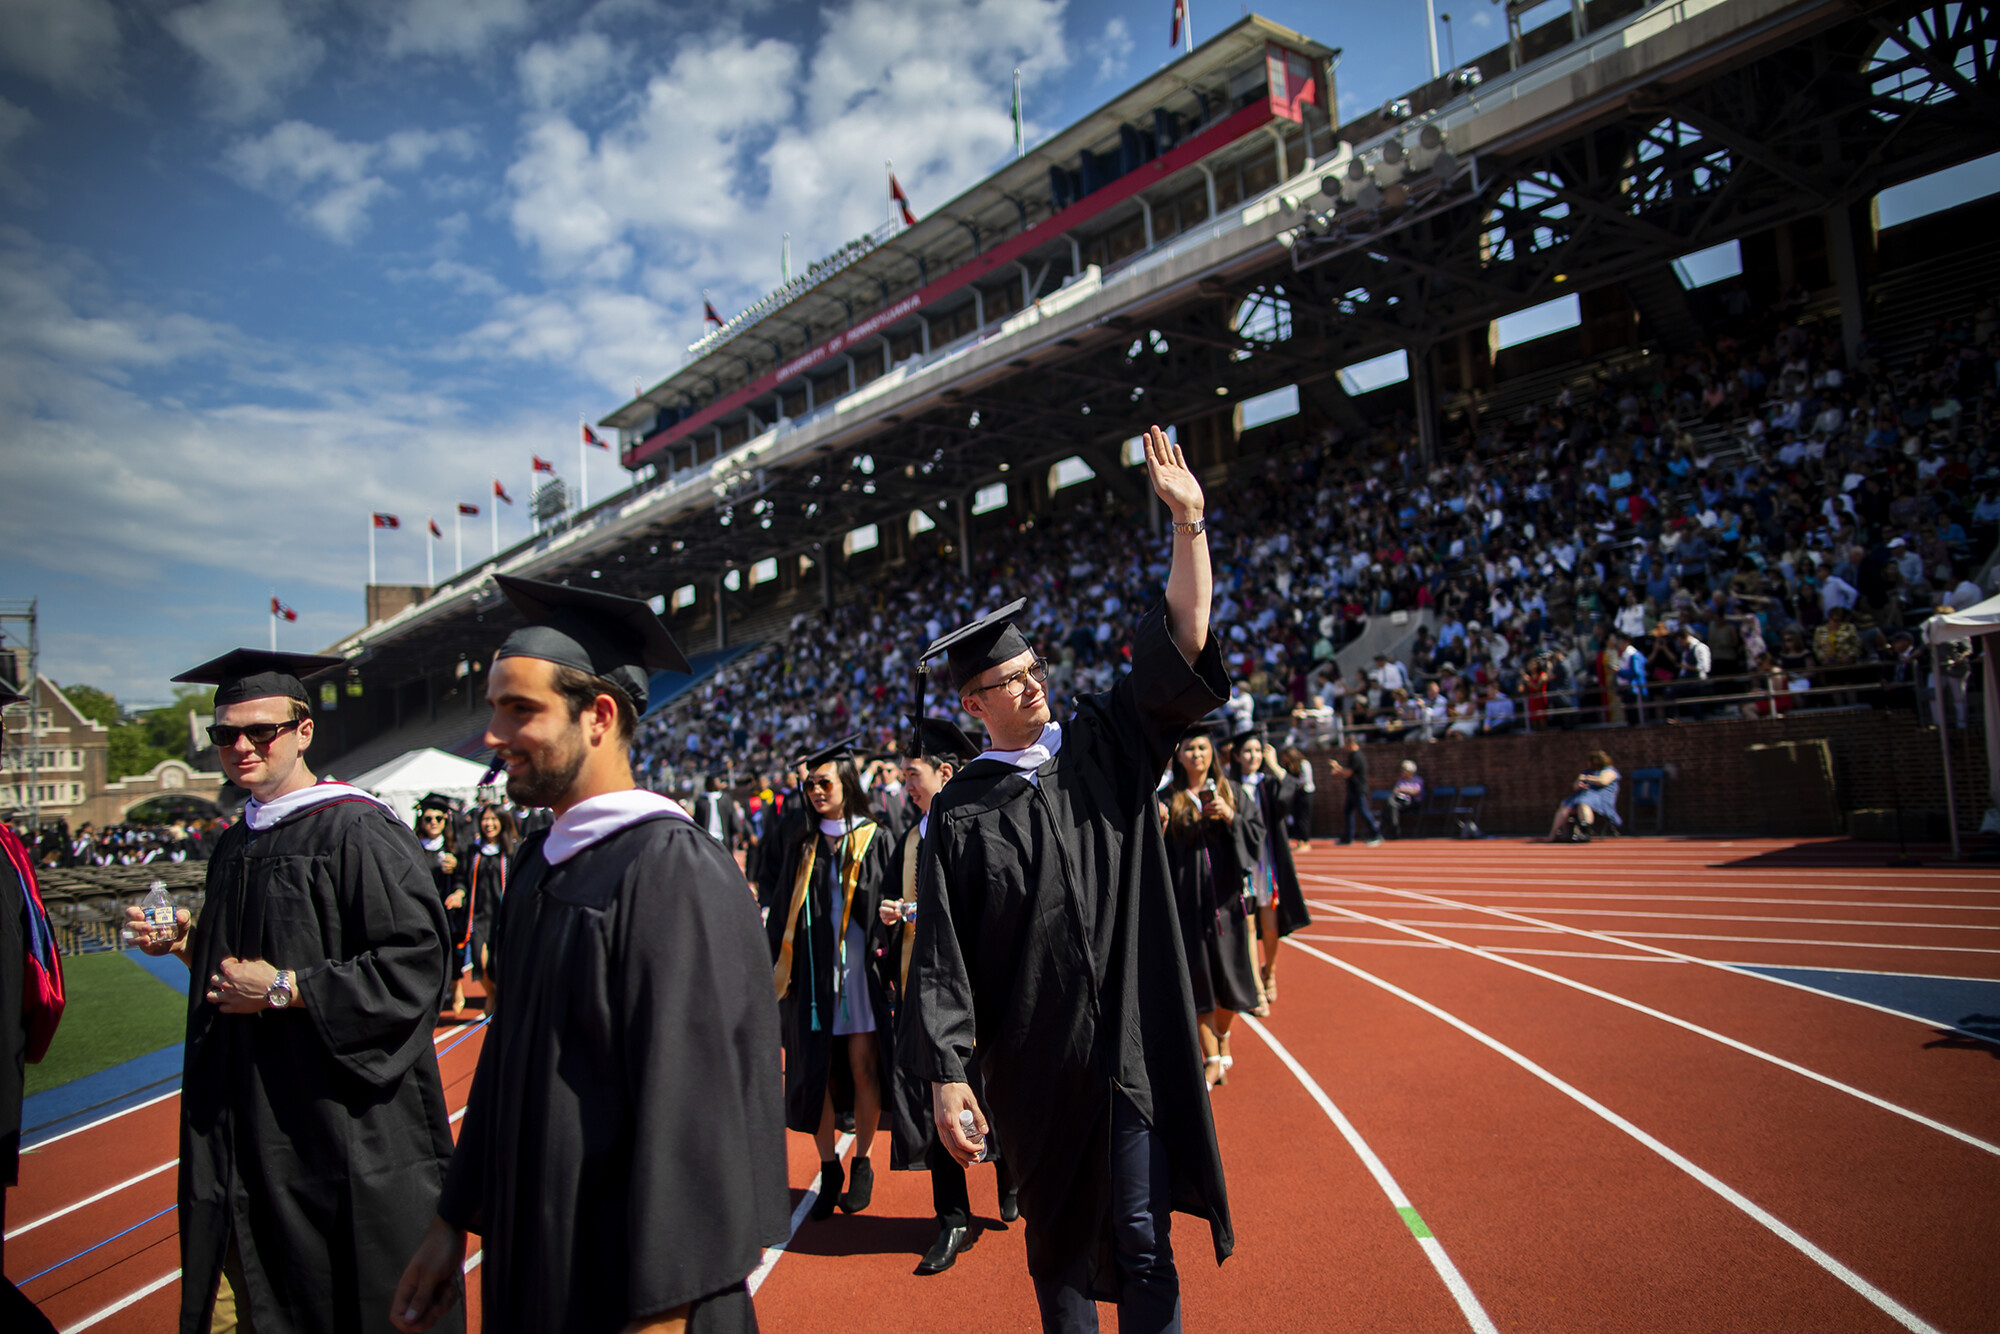 Graduates arrive on Franklin Field, one waving to audience.